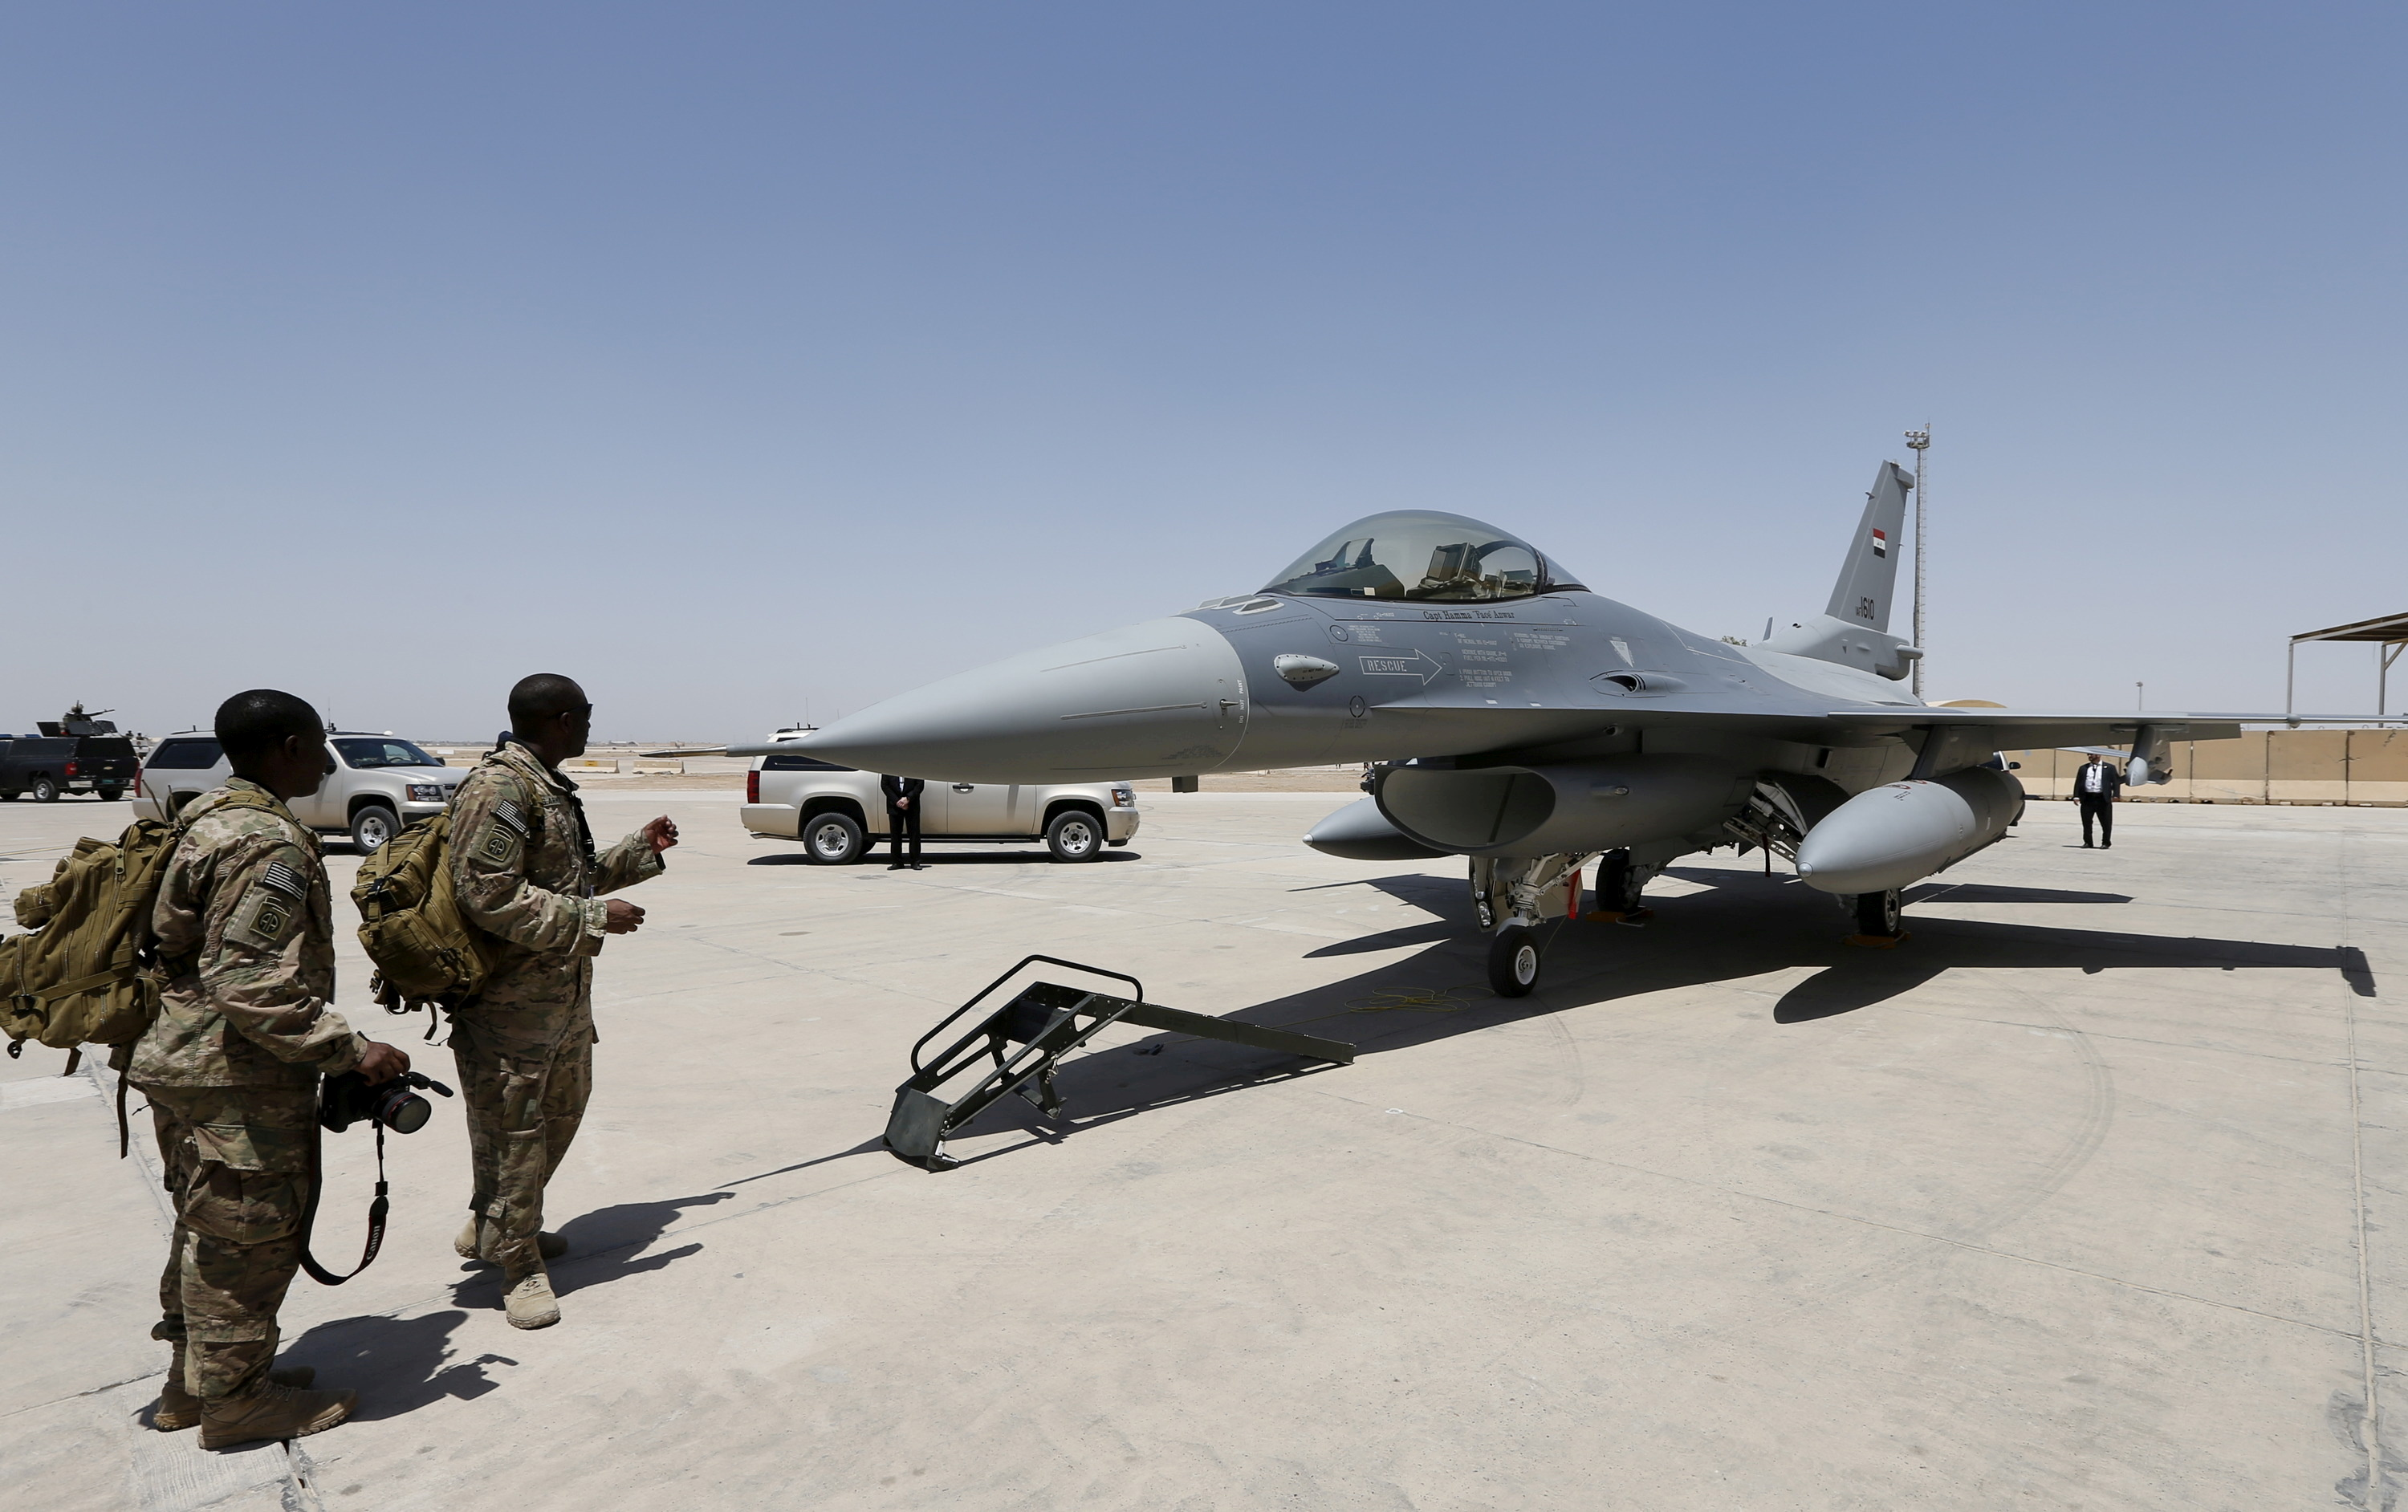 U.S. Army soldiers look at an F-16 fighter jet during an official ceremony to receive four such aircraft from the United States, at a military base in Balad, Iraq, July 20, 2015. REUTERS/Thaier Al-Sudani/File Photo